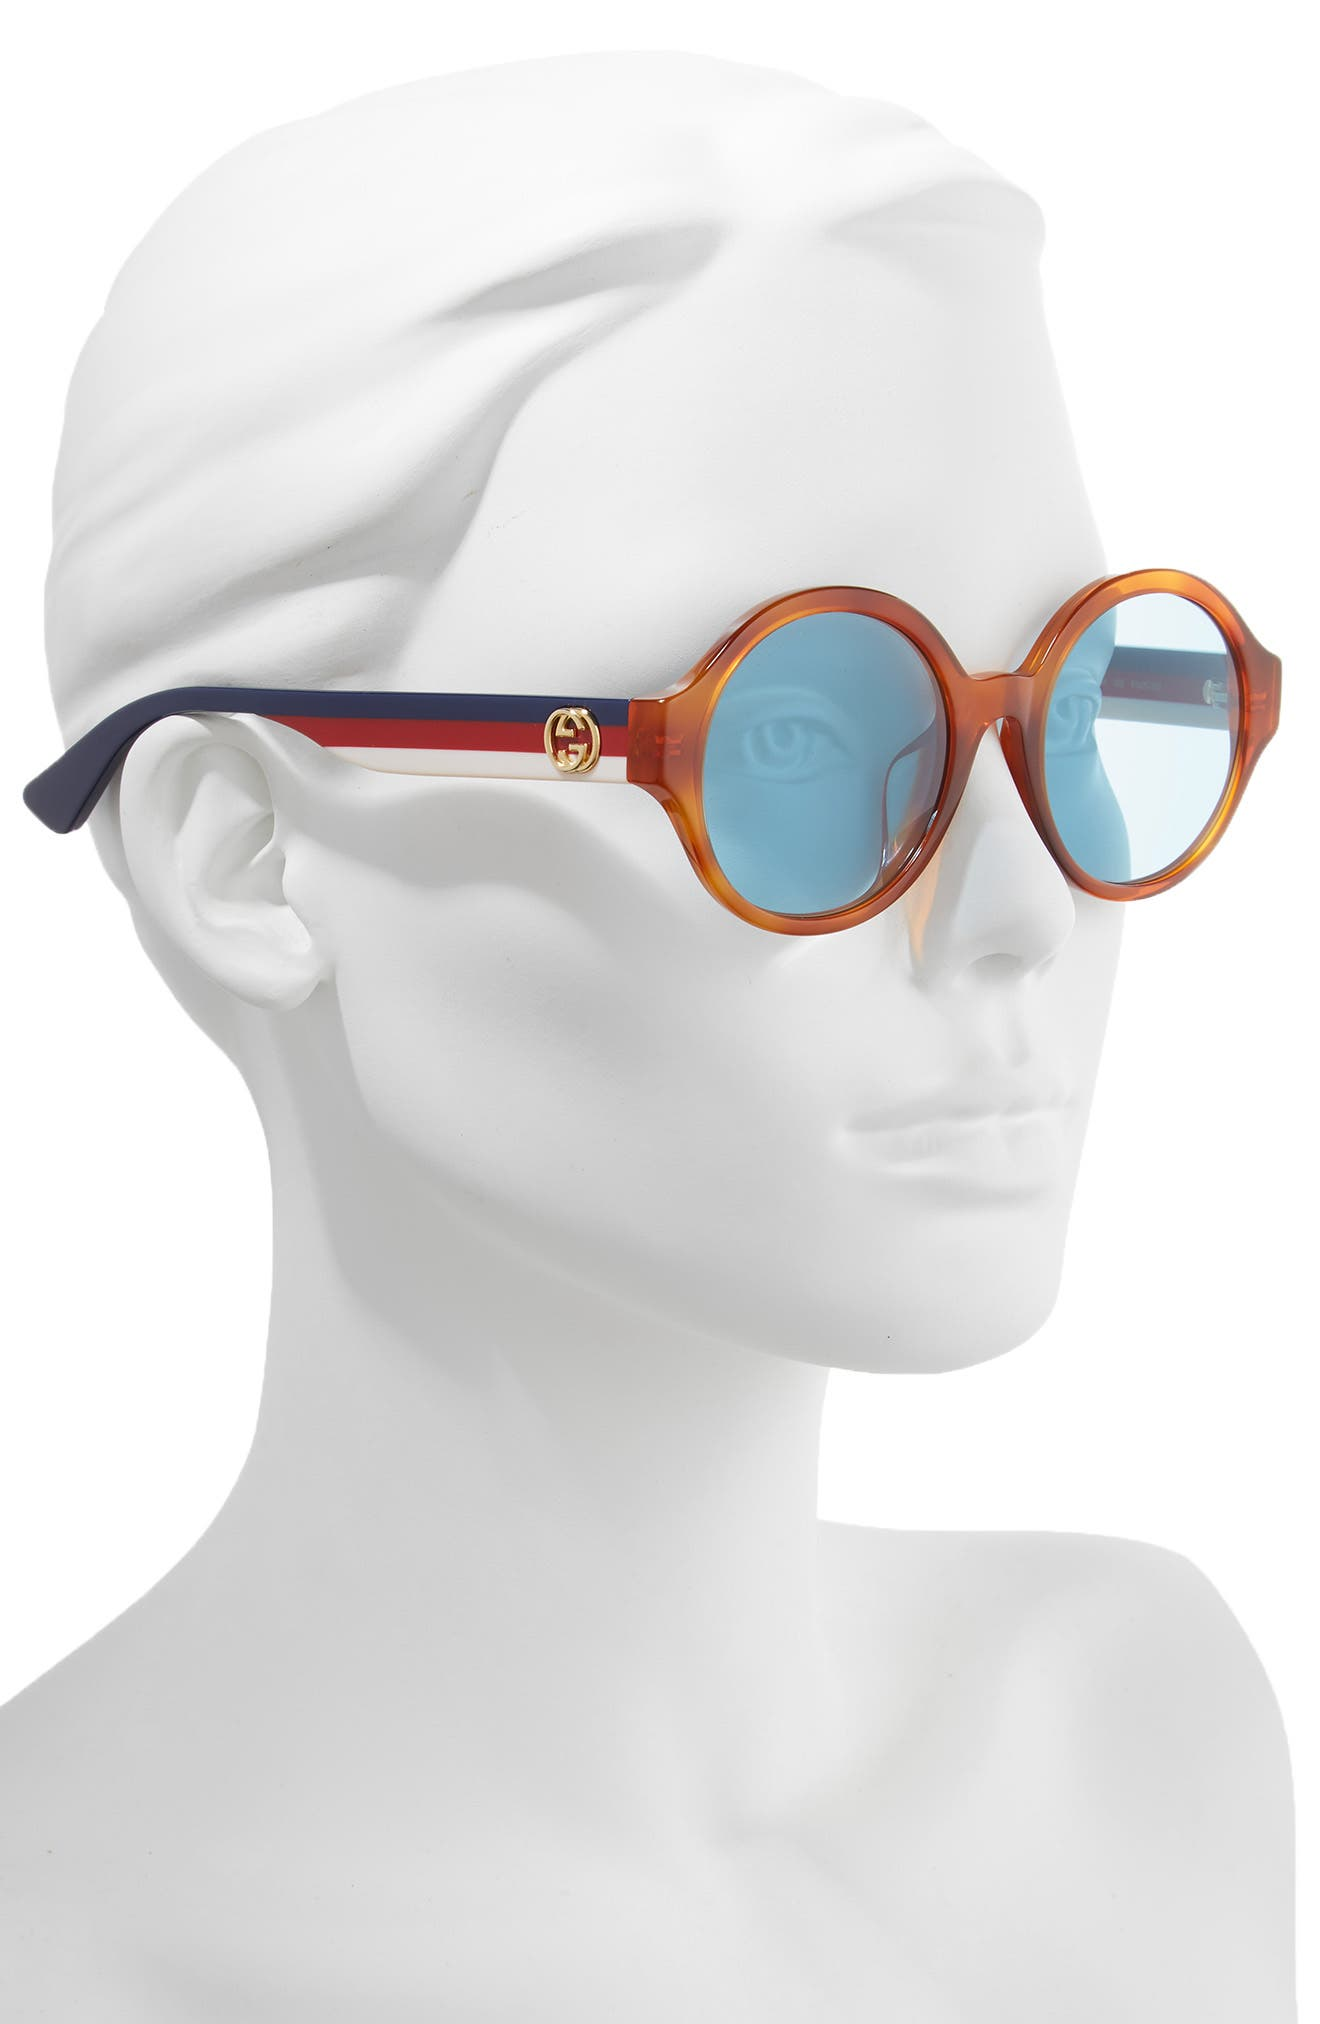 51mm Round Sunglasses,                             Alternate thumbnail 2, color,                             HAVANA